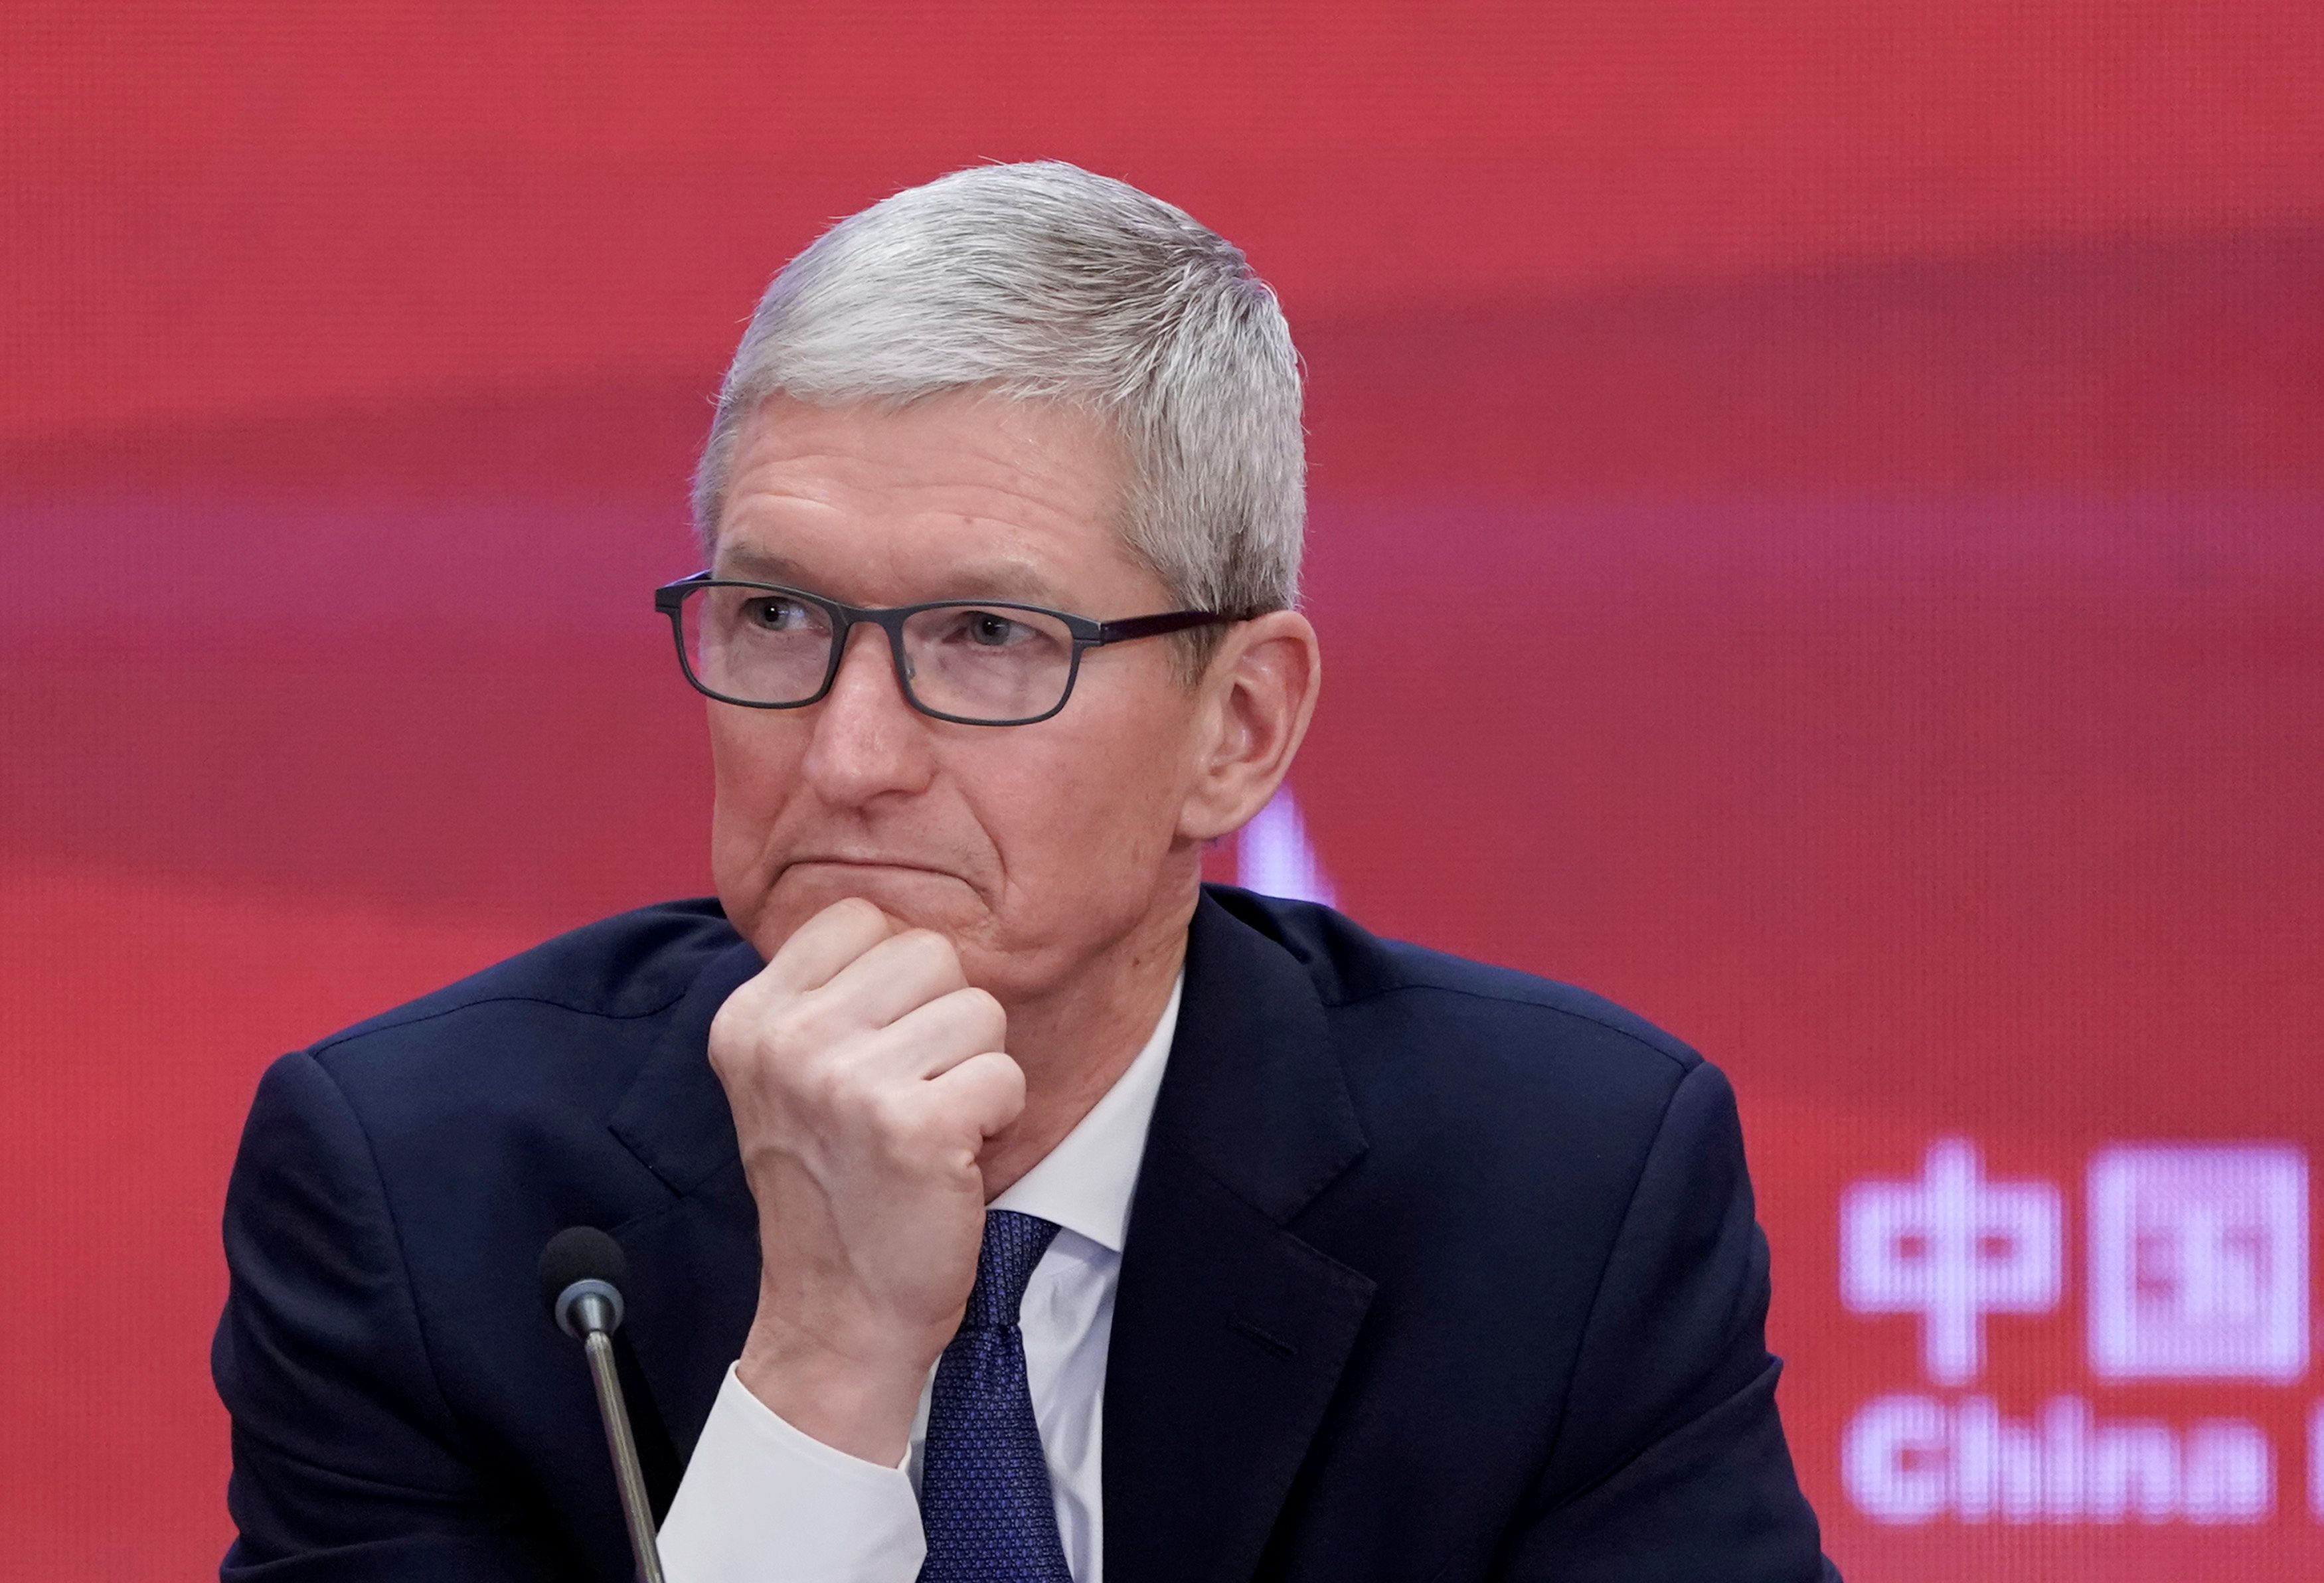 Tim Cook says China is turning its economy around.These stocks could benefit as well